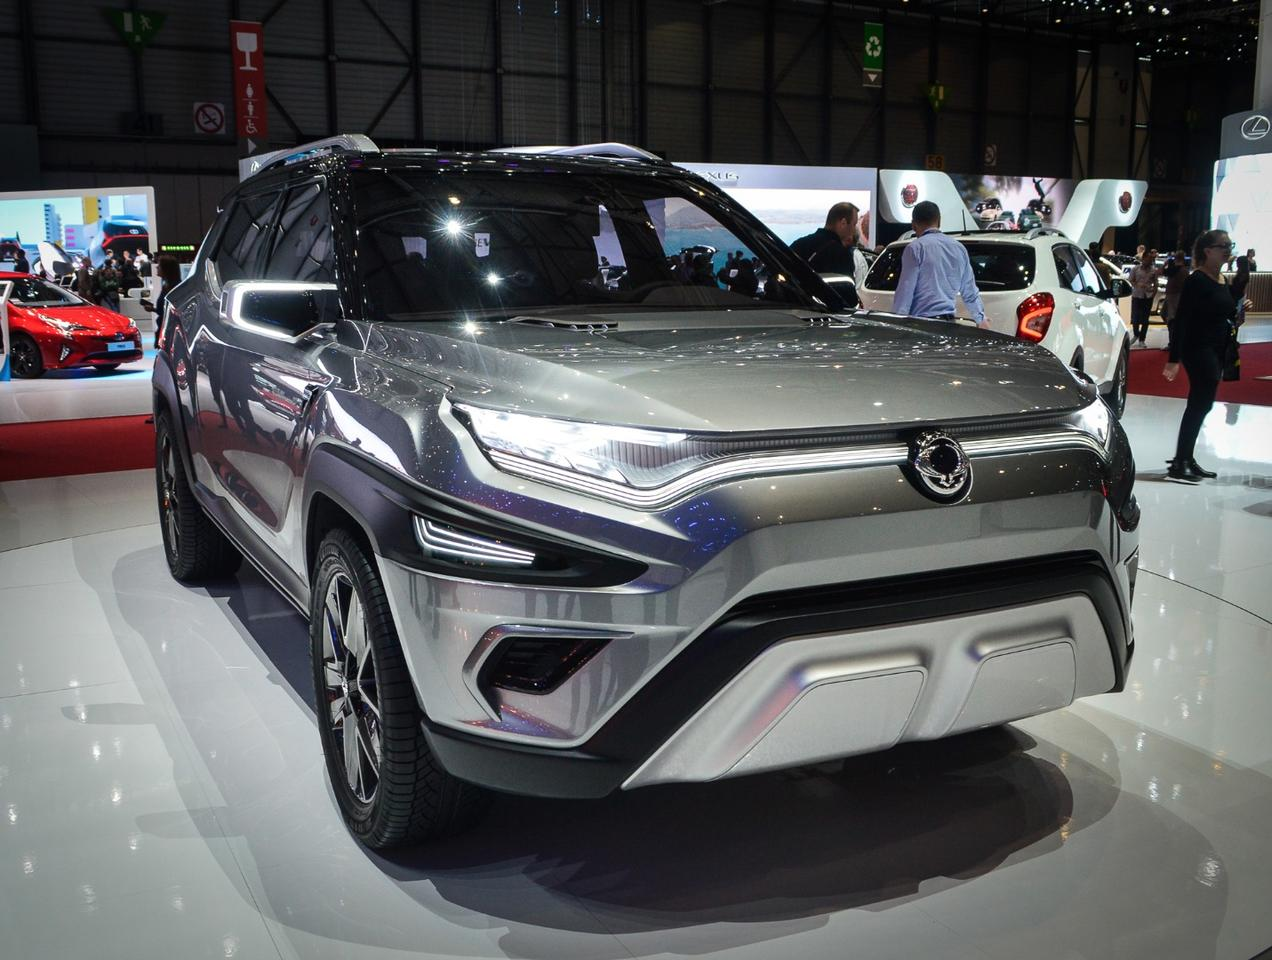 Never shy about an SUV concept, SsangYong shows the XAVL Concept at the Geneva show